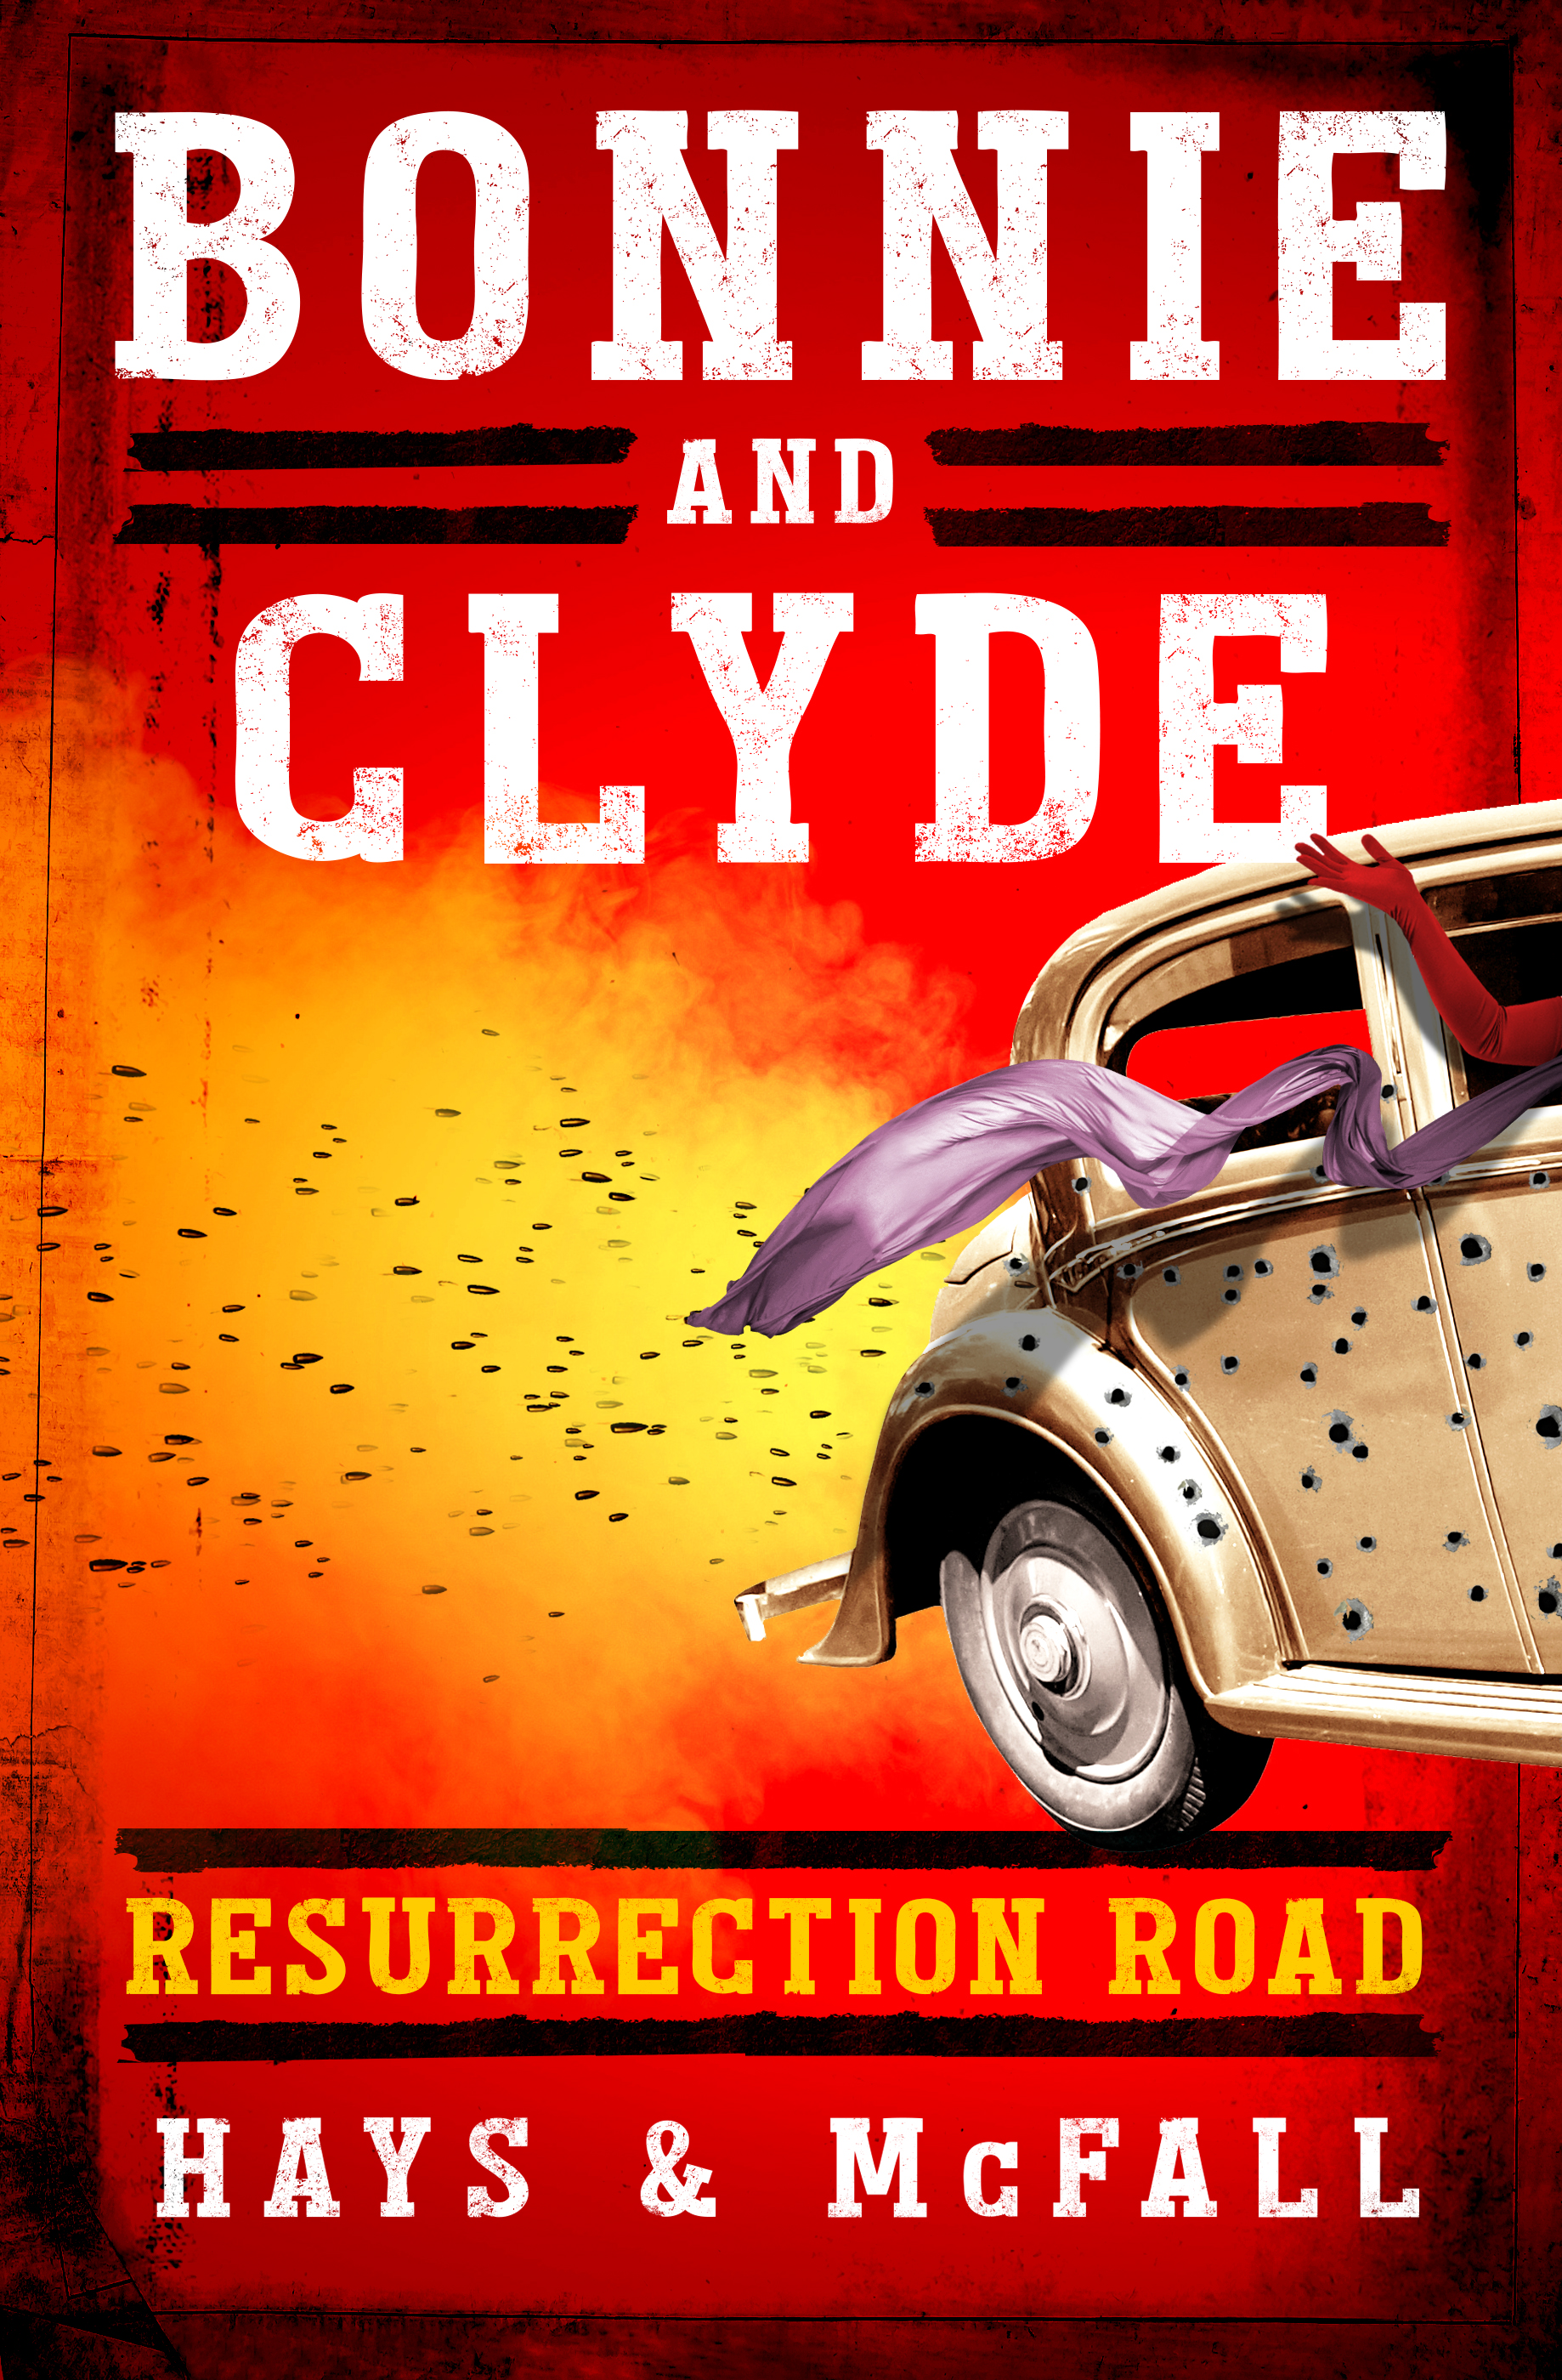 Bonnie and Clyde_Resurrection Road Hays and McFall_HR copy.jpg